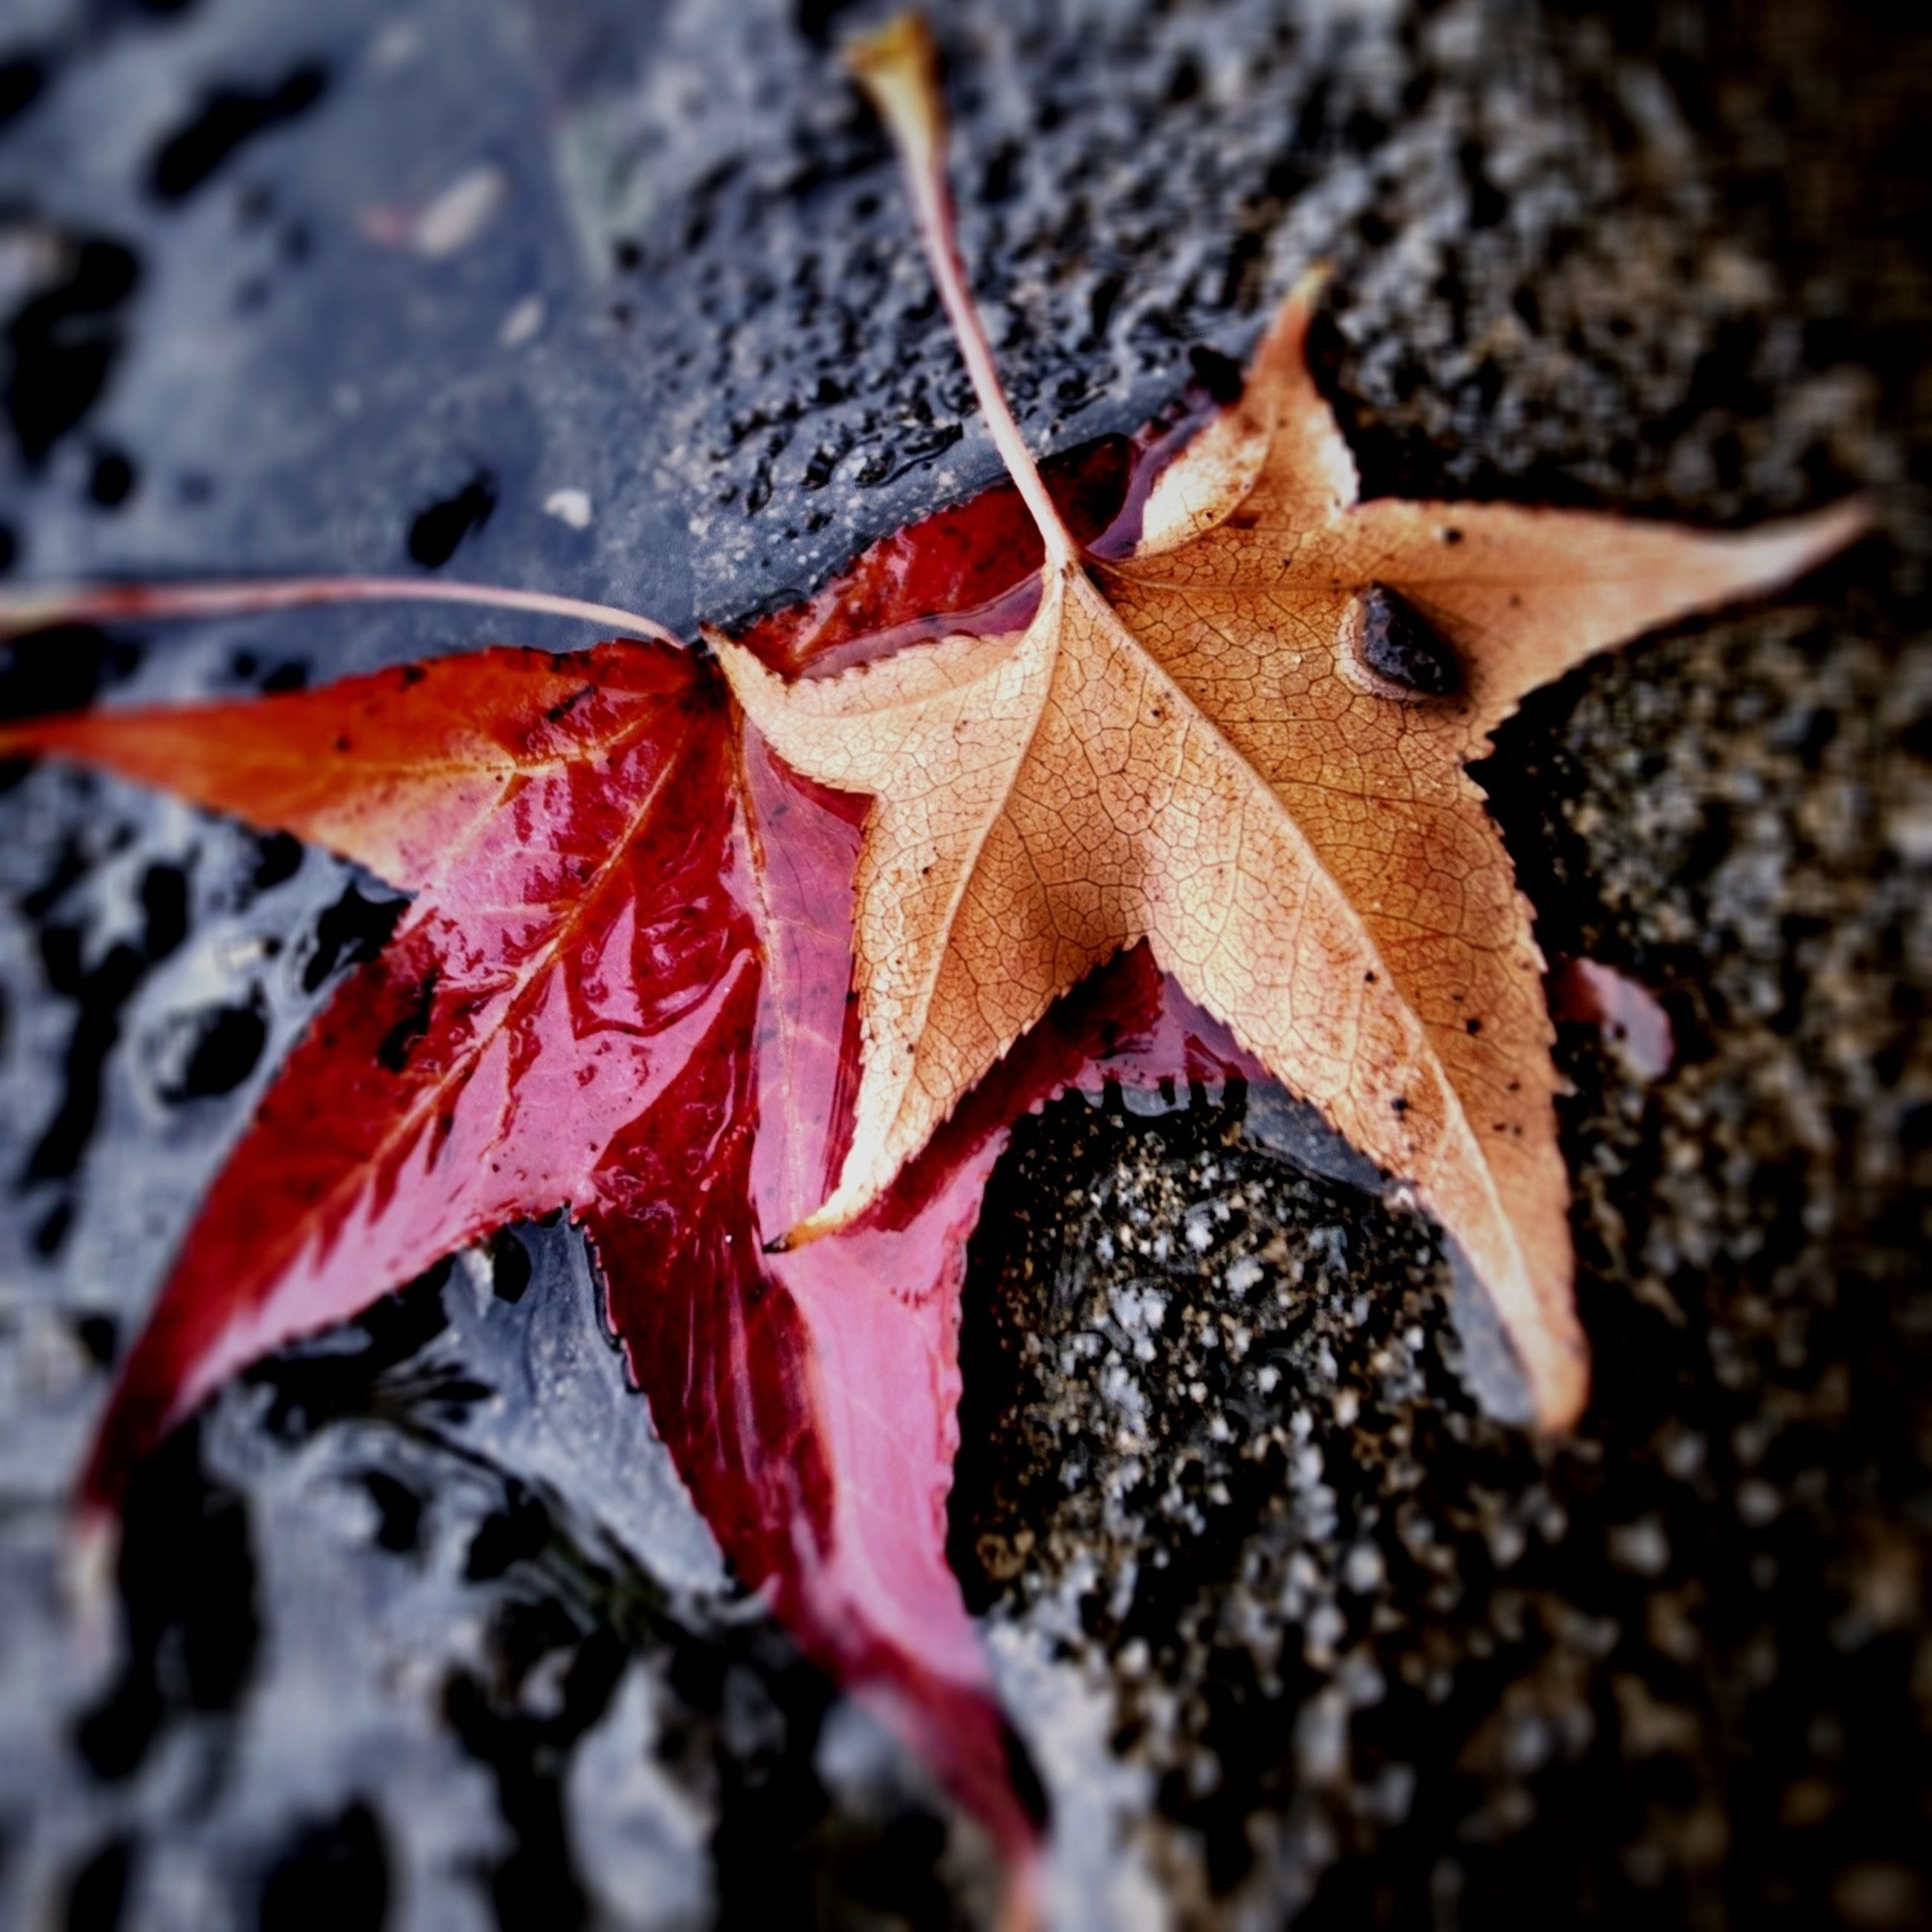 autumn, change, leaf, season, dry, leaves, maple leaf, fallen, close-up, nature, red, leaf vein, orange color, selective focus, natural pattern, high angle view, natural condition, outdoors, day, no people